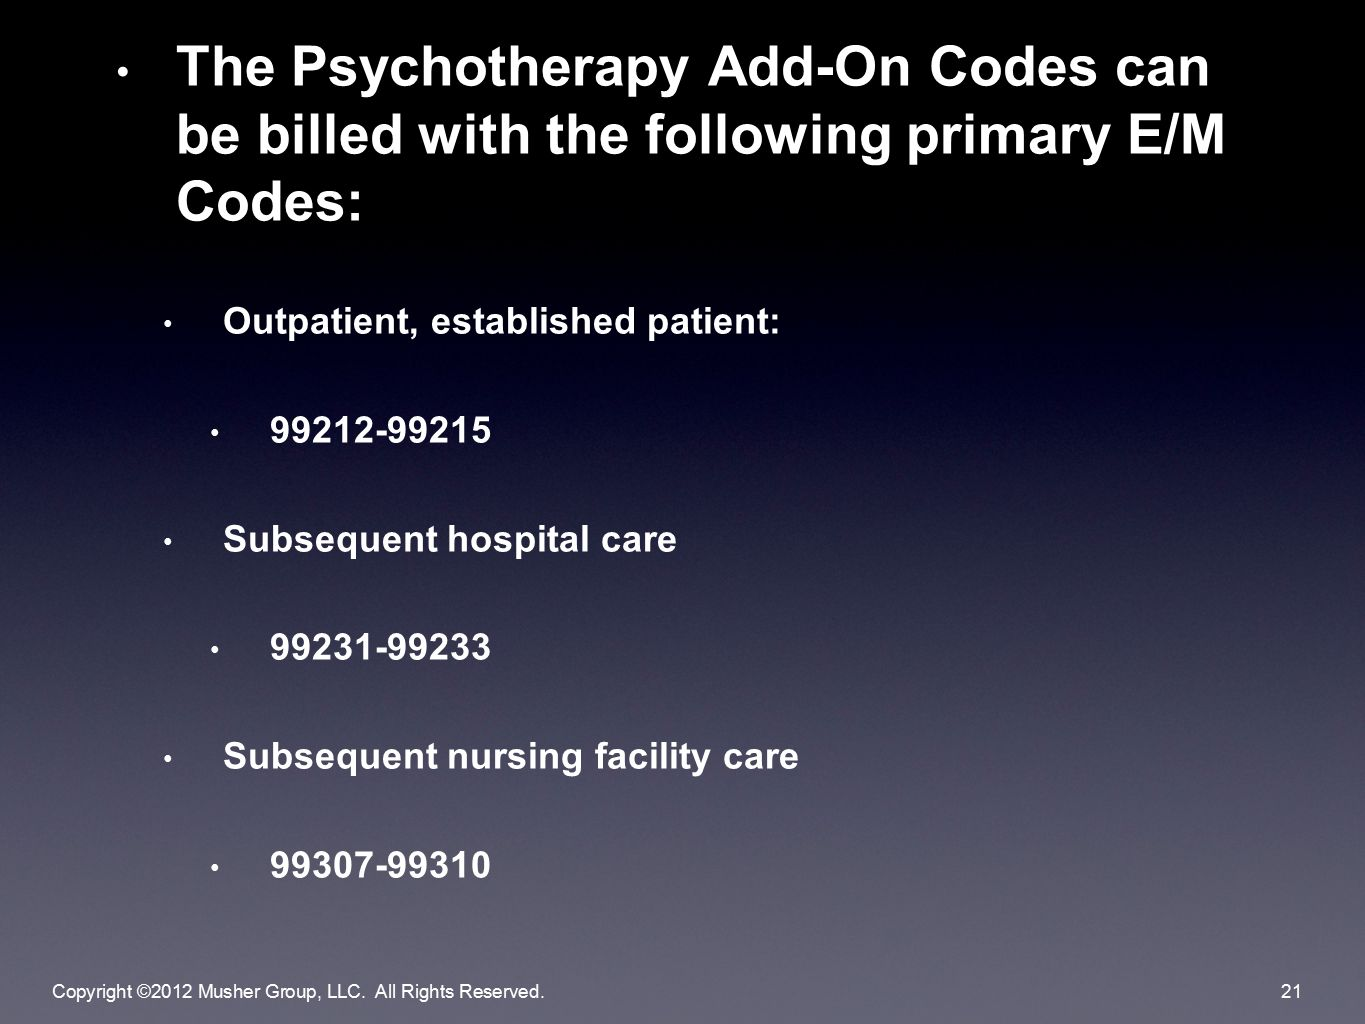 The Psychotherapy Add-On Codes can be billed with the following primary E/M Codes: Outpatient, established patient: 99212-99215 Subsequent hospital care 99231-99233 Subsequent nursing facility care 99307-99310 Copyright ©2012 Musher Group, LLC.